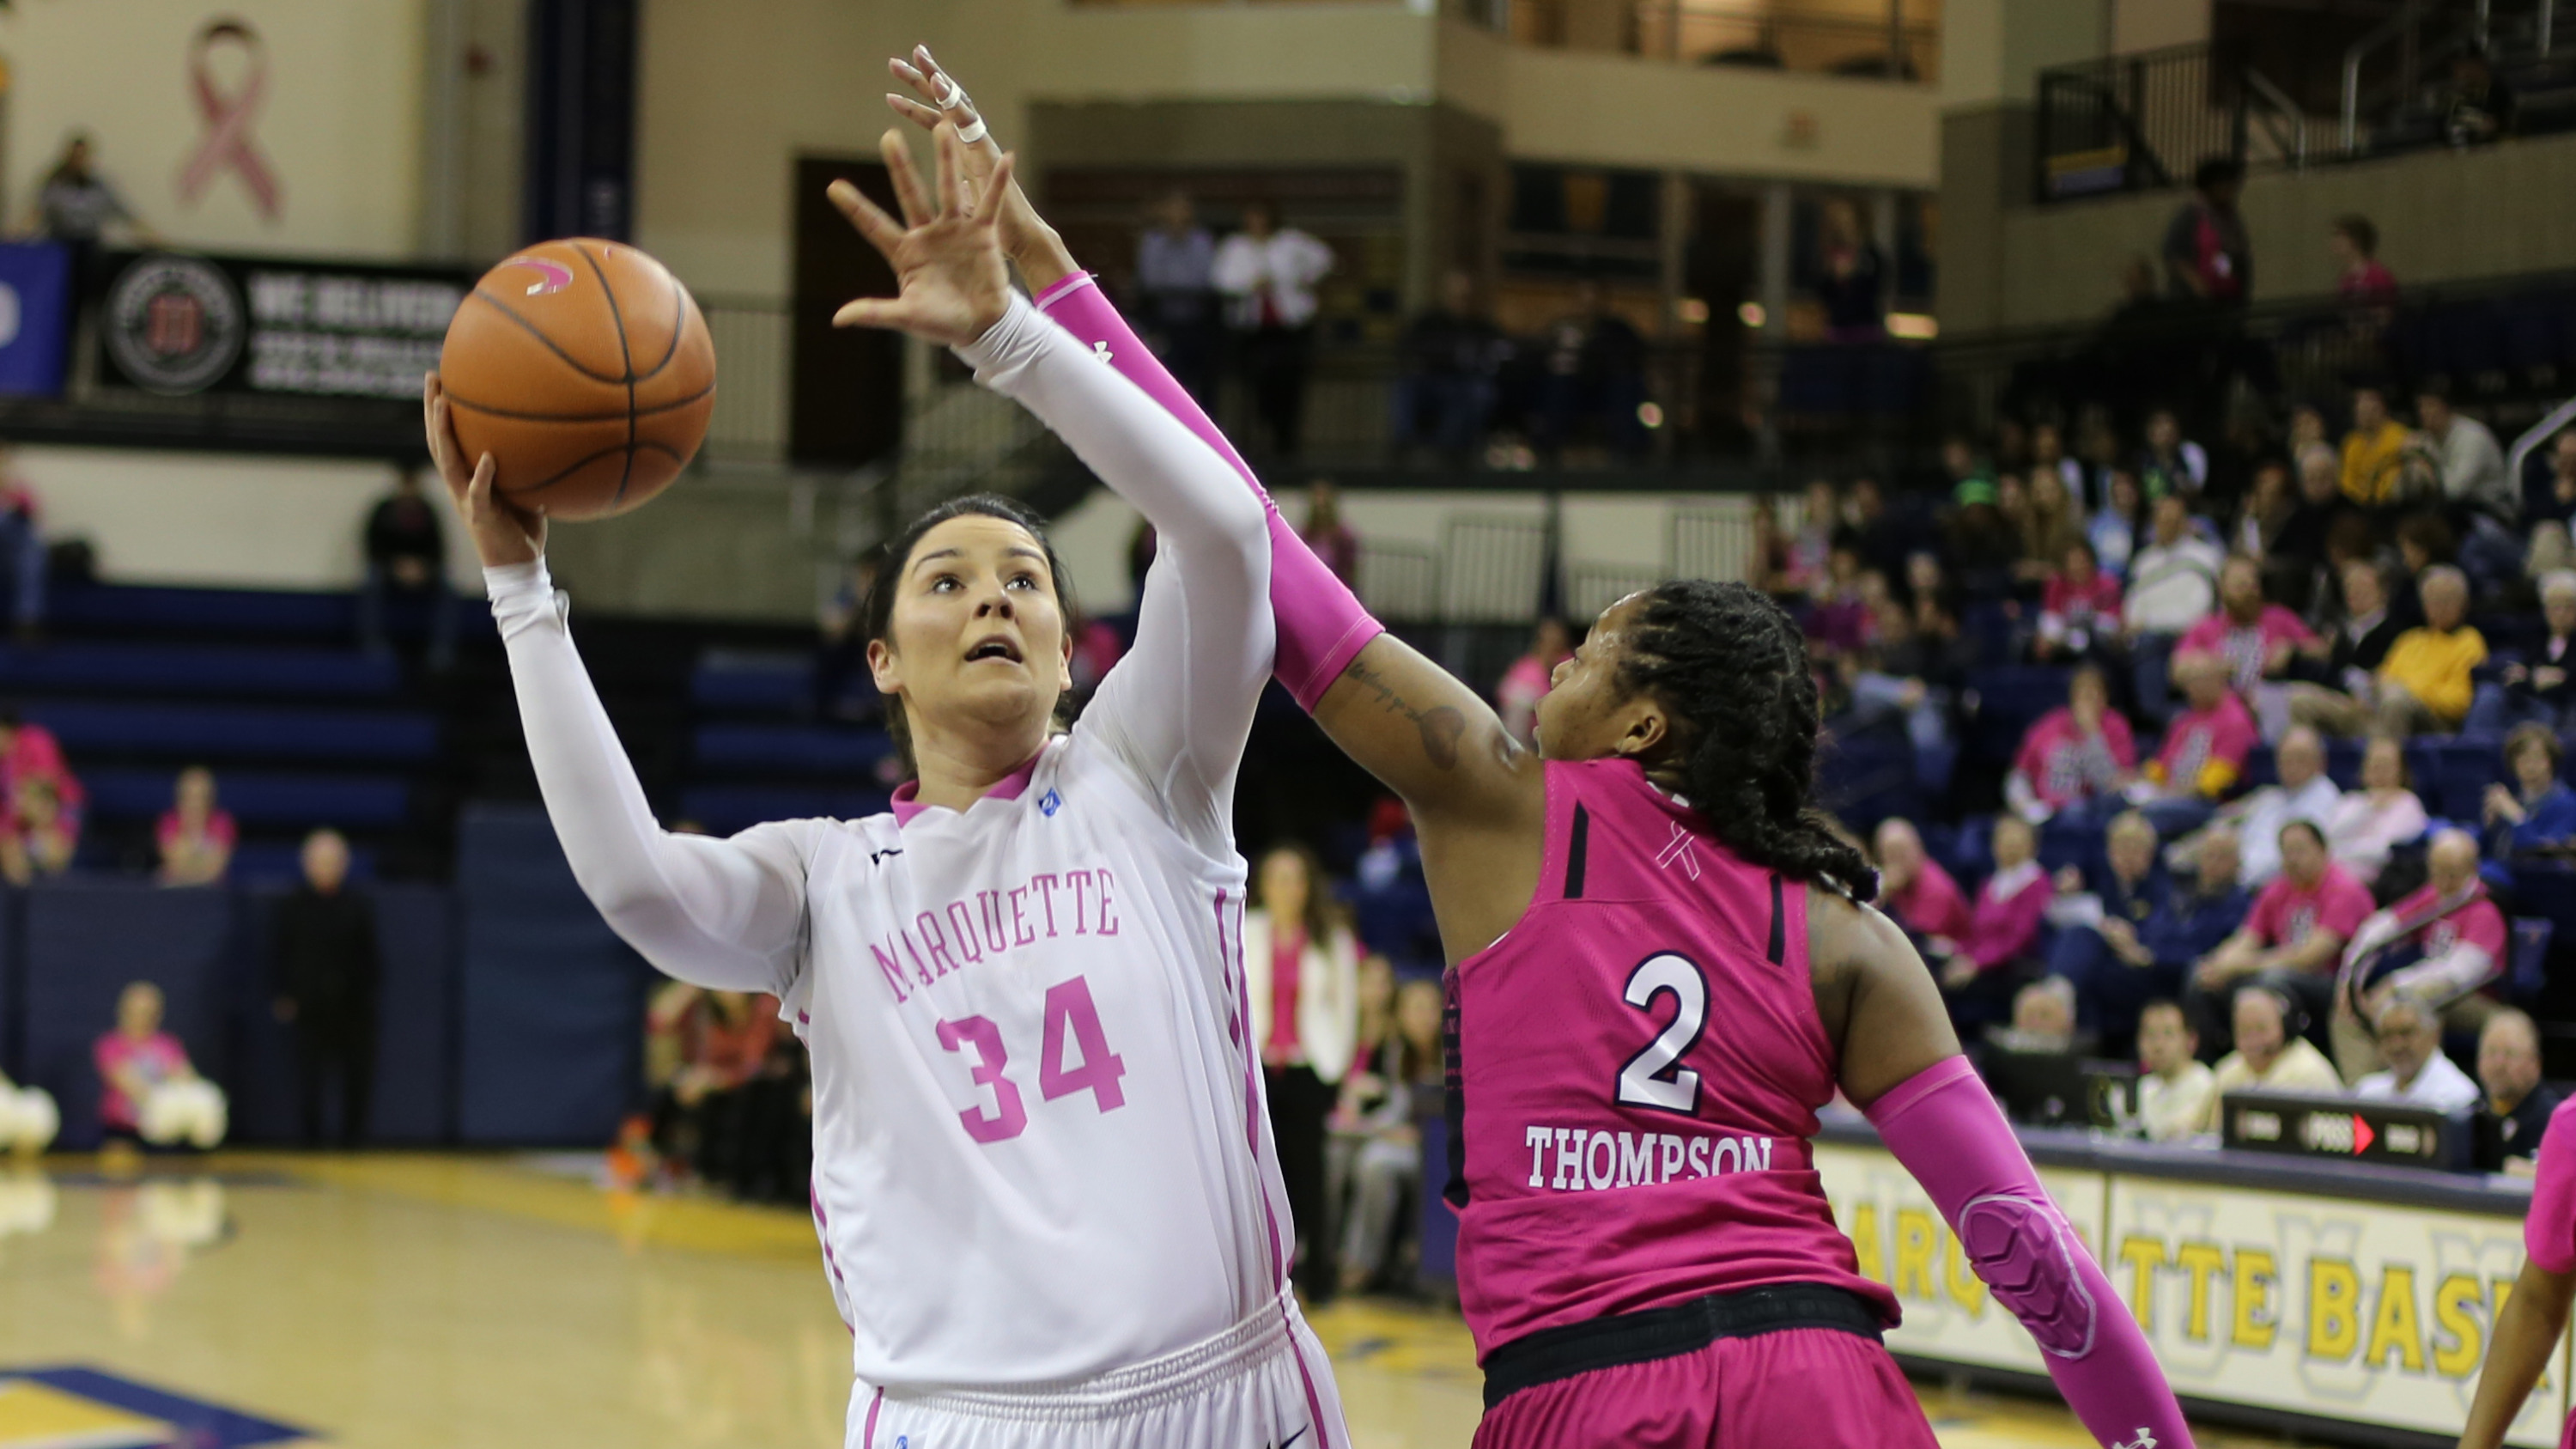 MU's Chelsie Butler scored 11 points coming off the bench